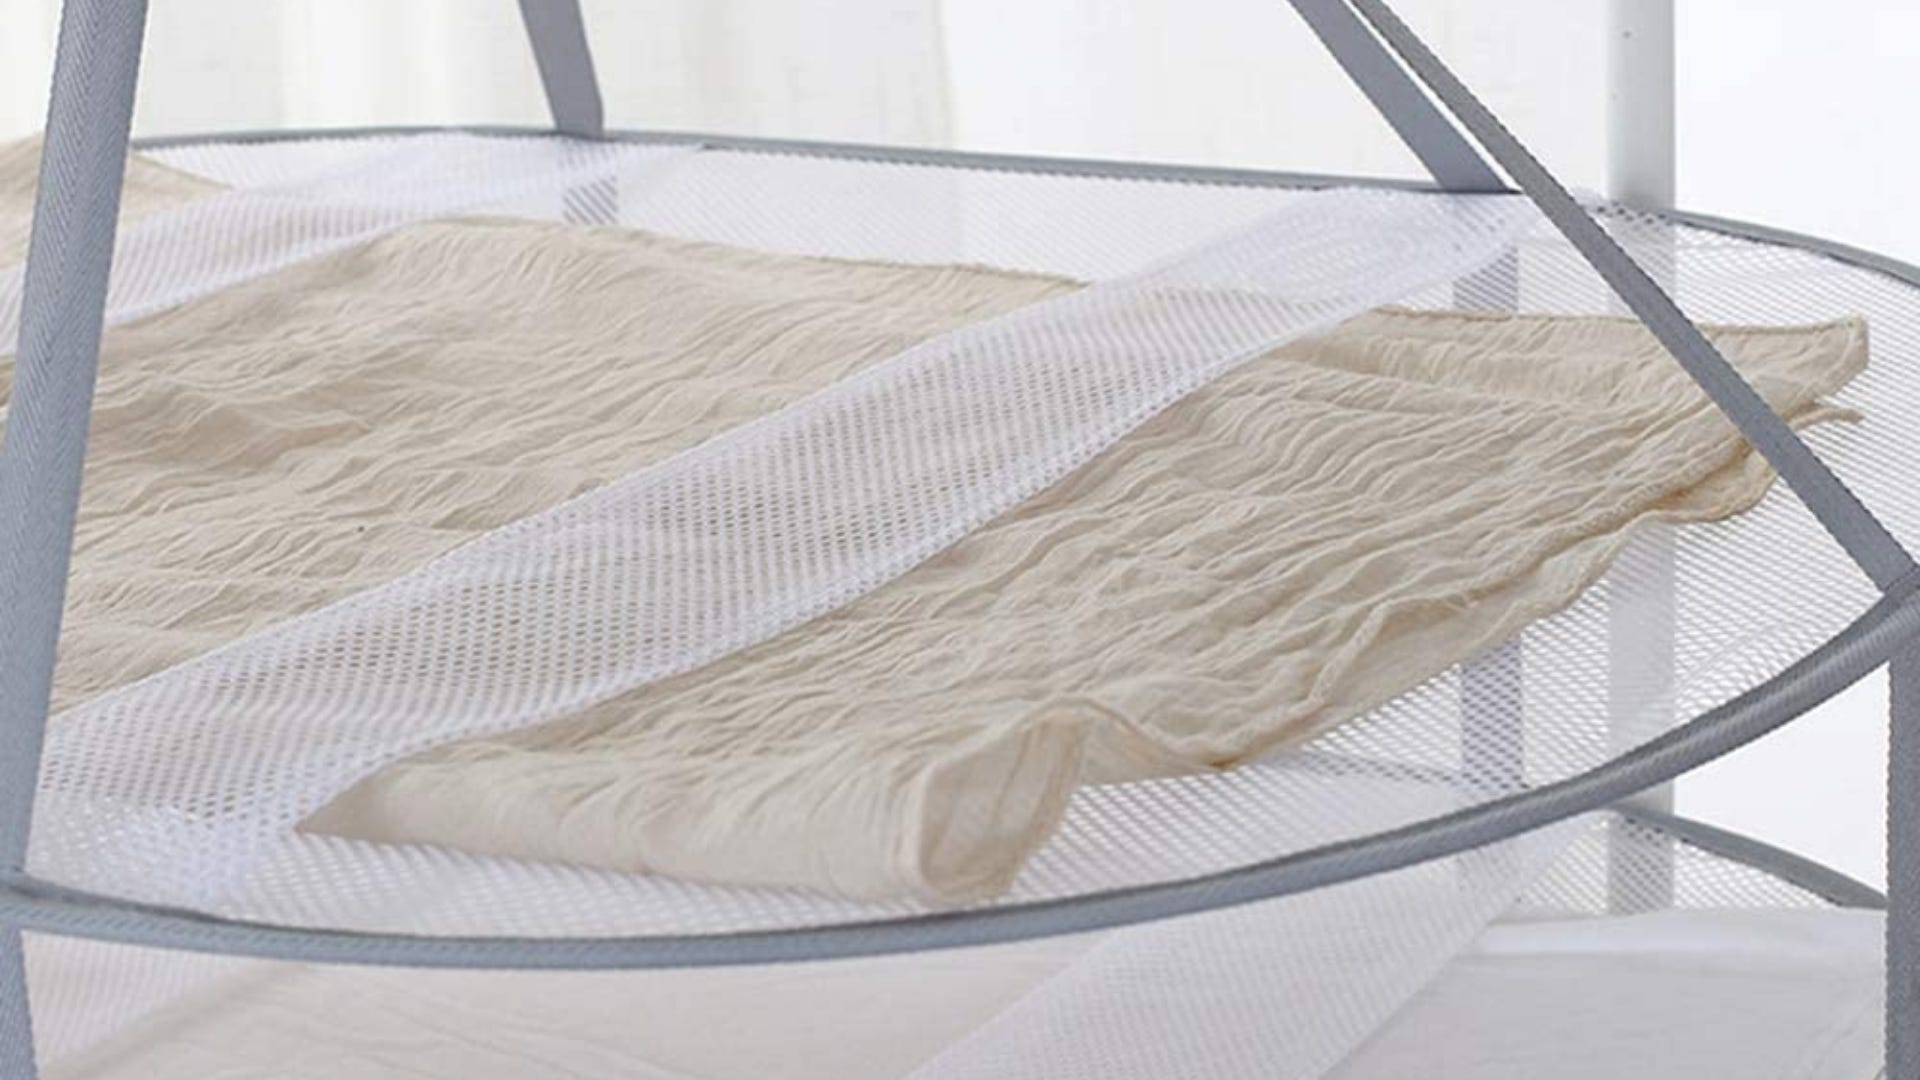 A delicate piece of material lying on a sweater hanging dryer.